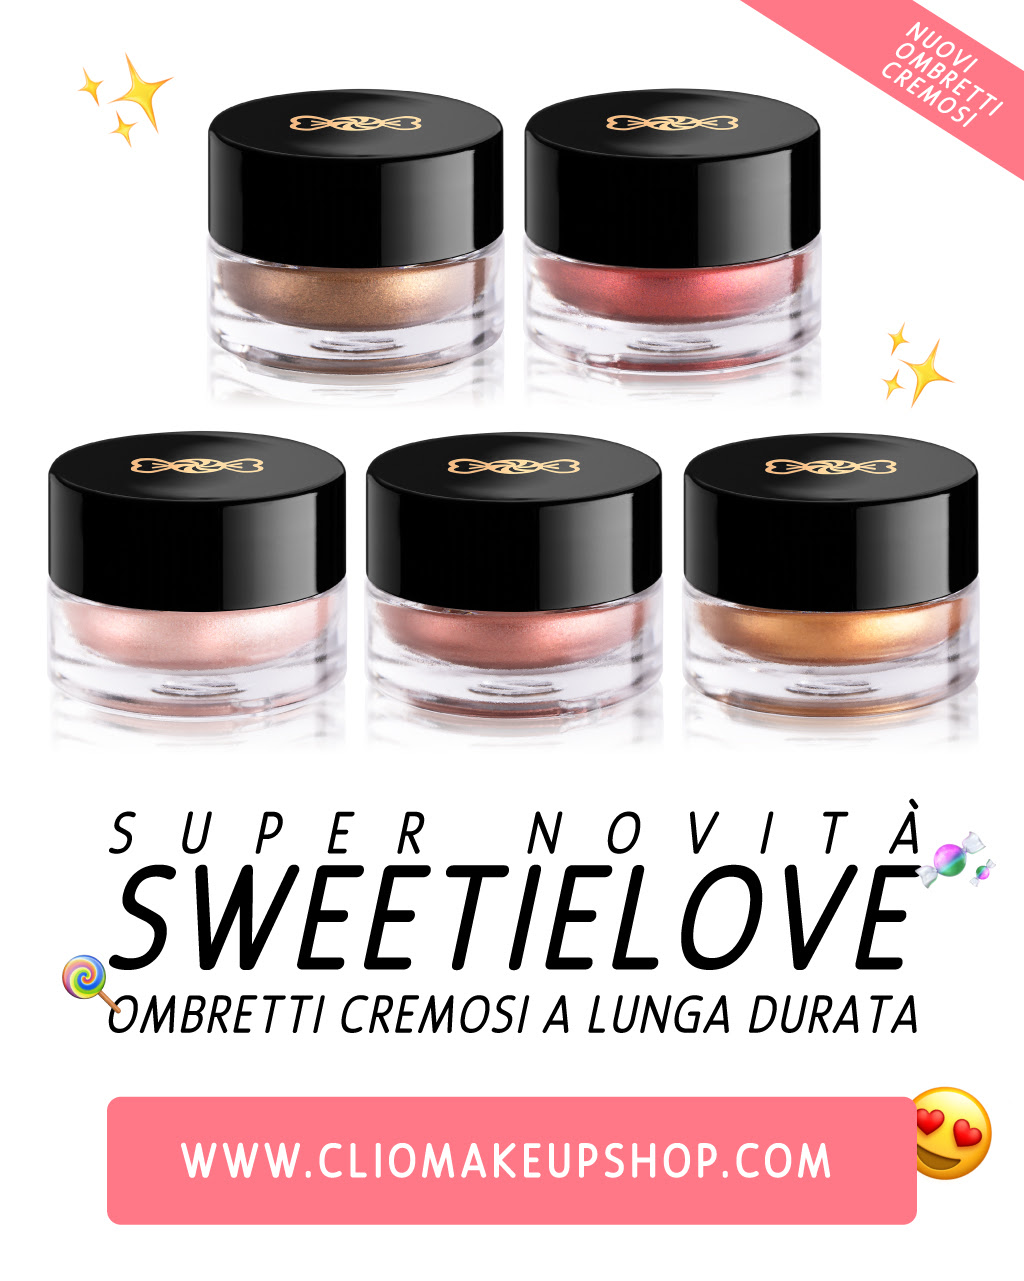 ombretti cliomakeup sweetielove